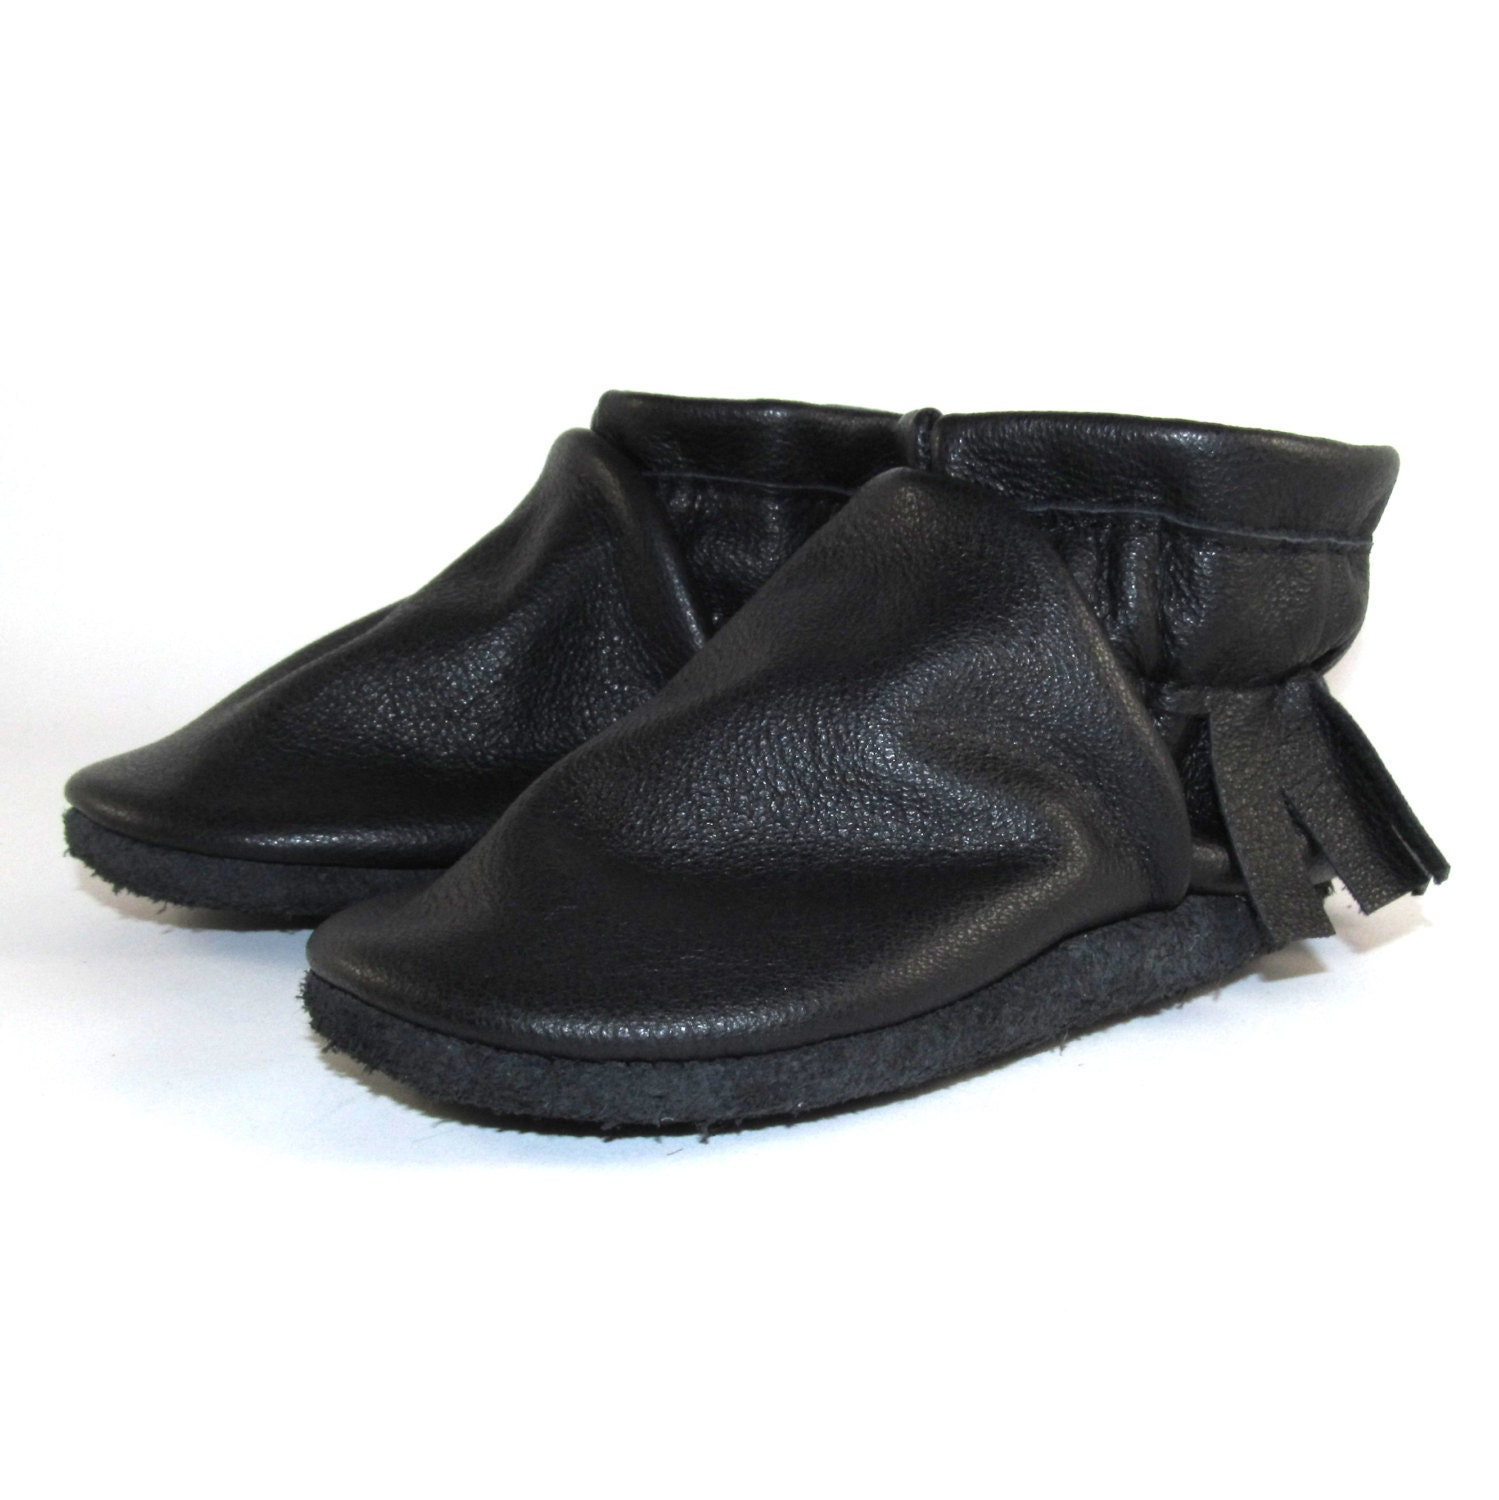 soft sole black leather baby shoes moccasins 6 to 12 month